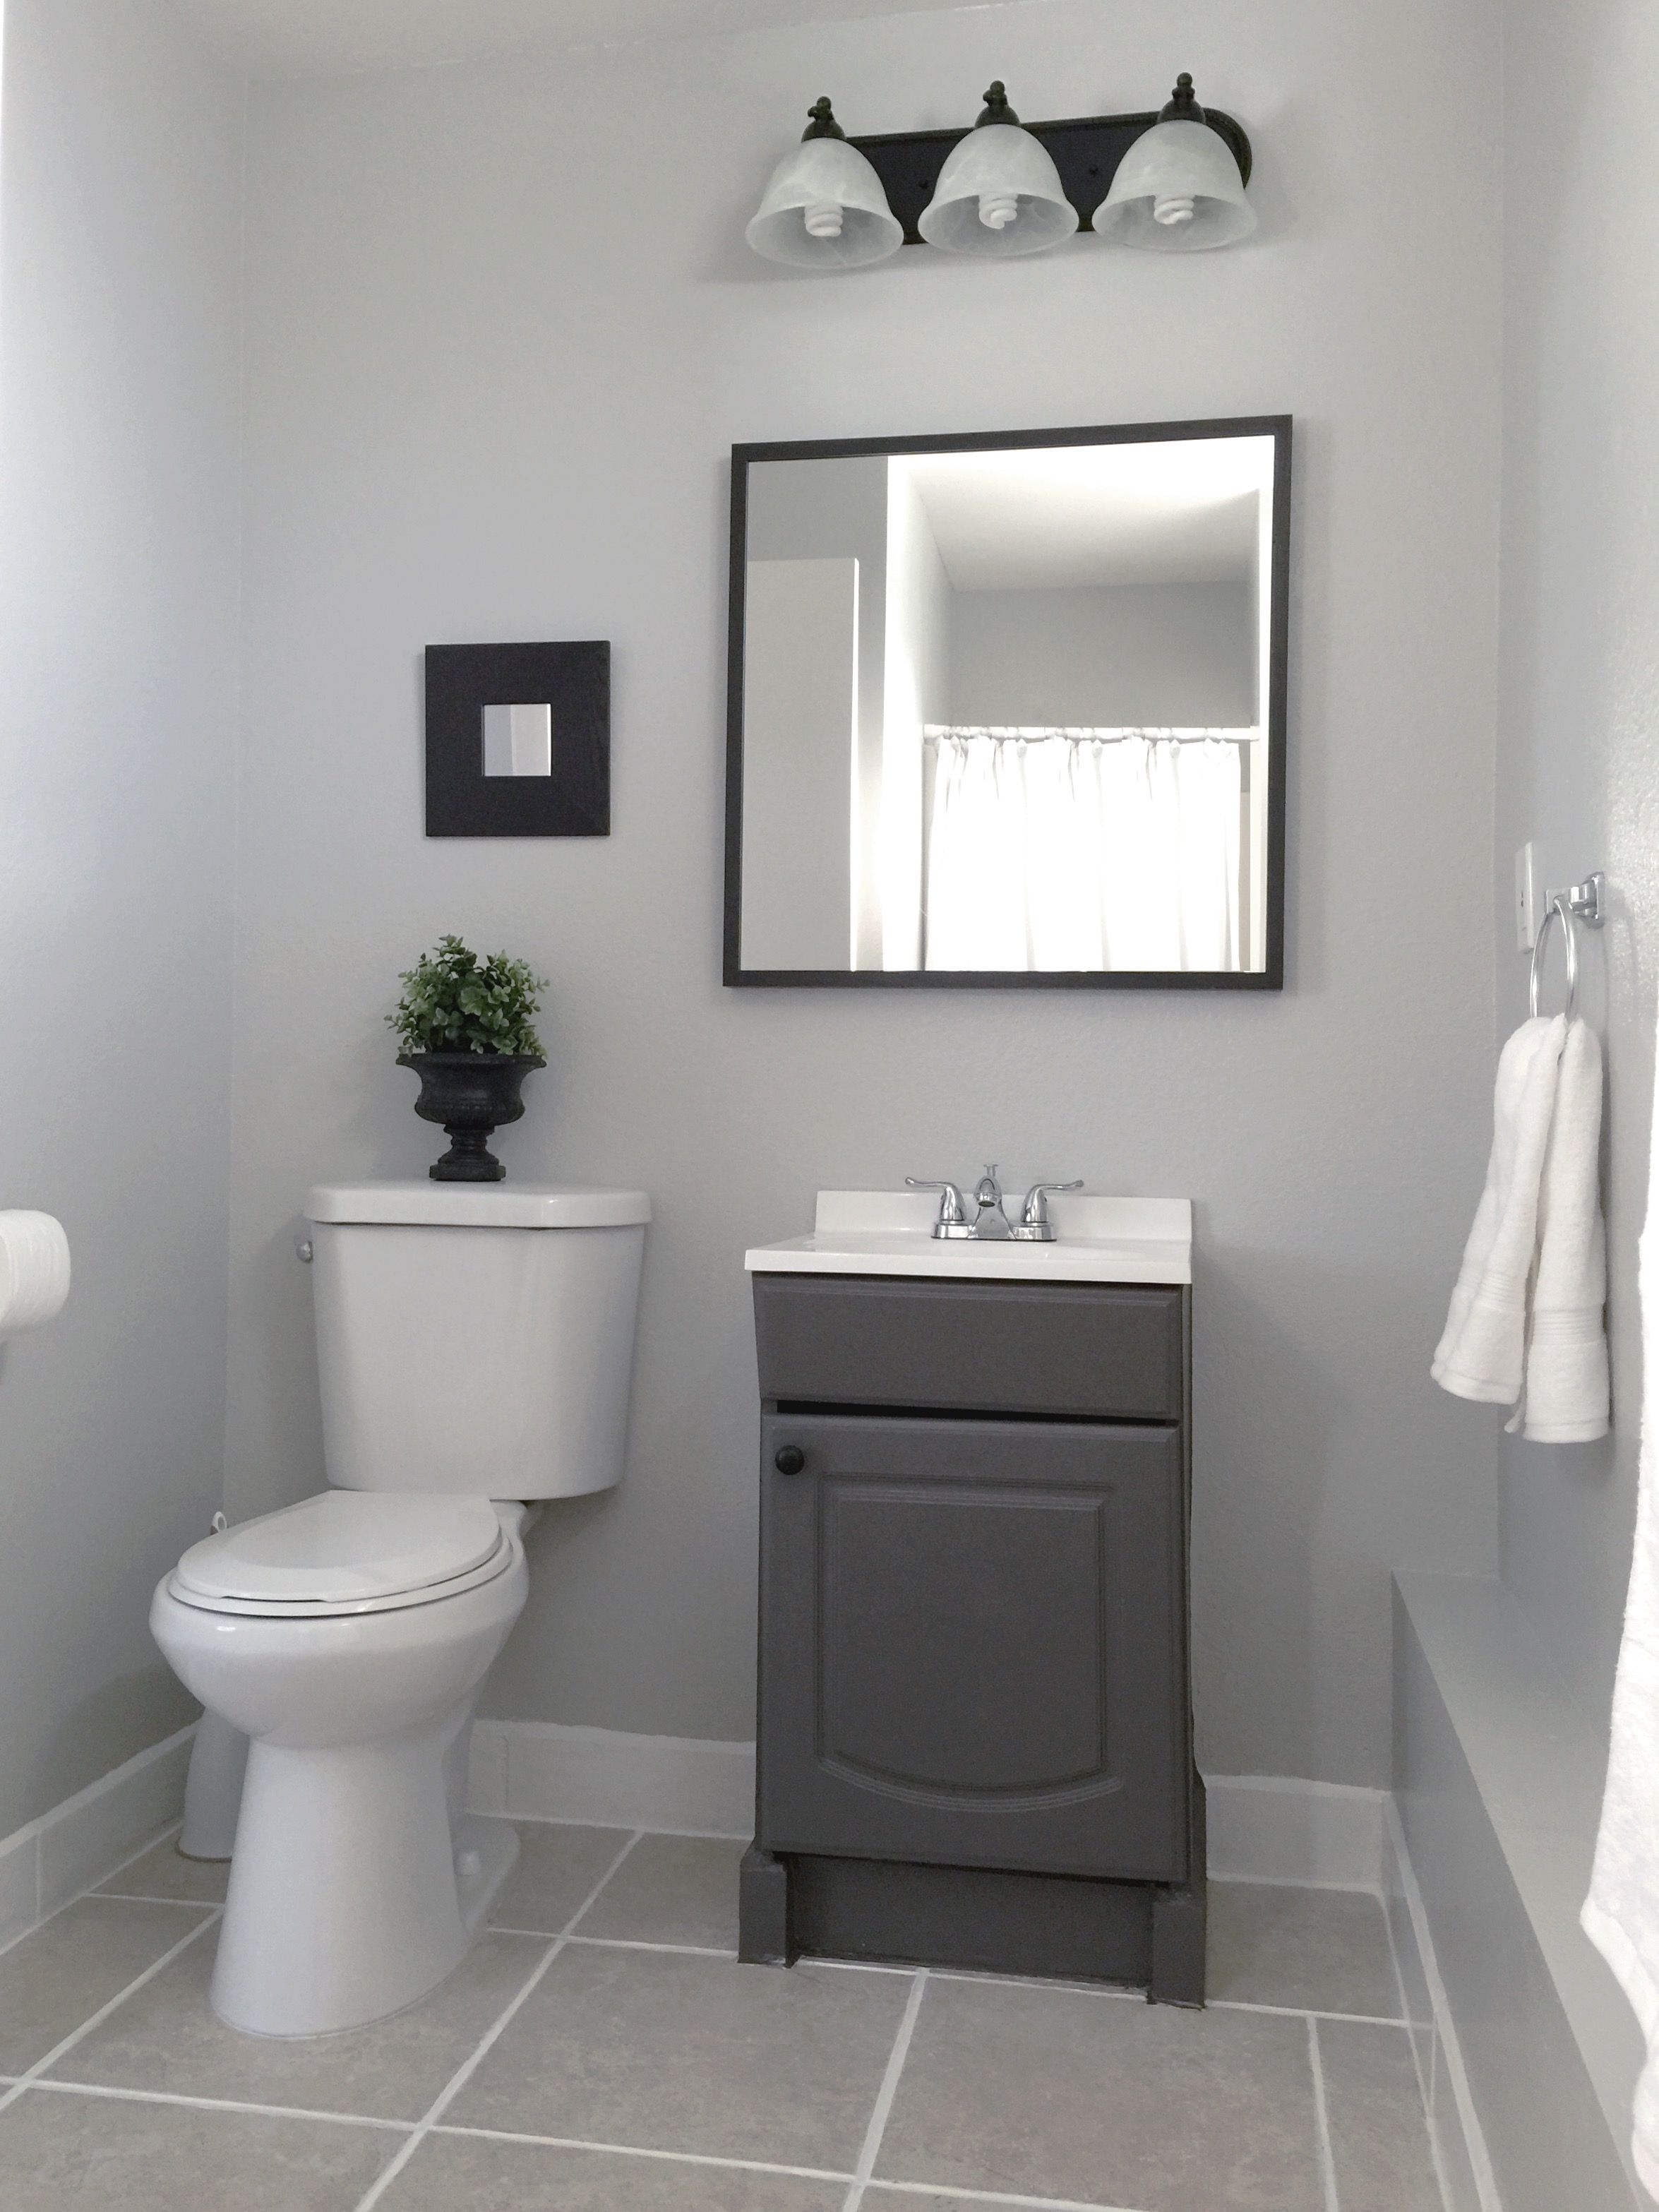 Small Garage Bathroom Painted Vanity Wall Behr Dolphin Fin Gray Wall Light Fixtur Bathroom Paint Colors Behr Small Bathroom Colors Painting Bathroom